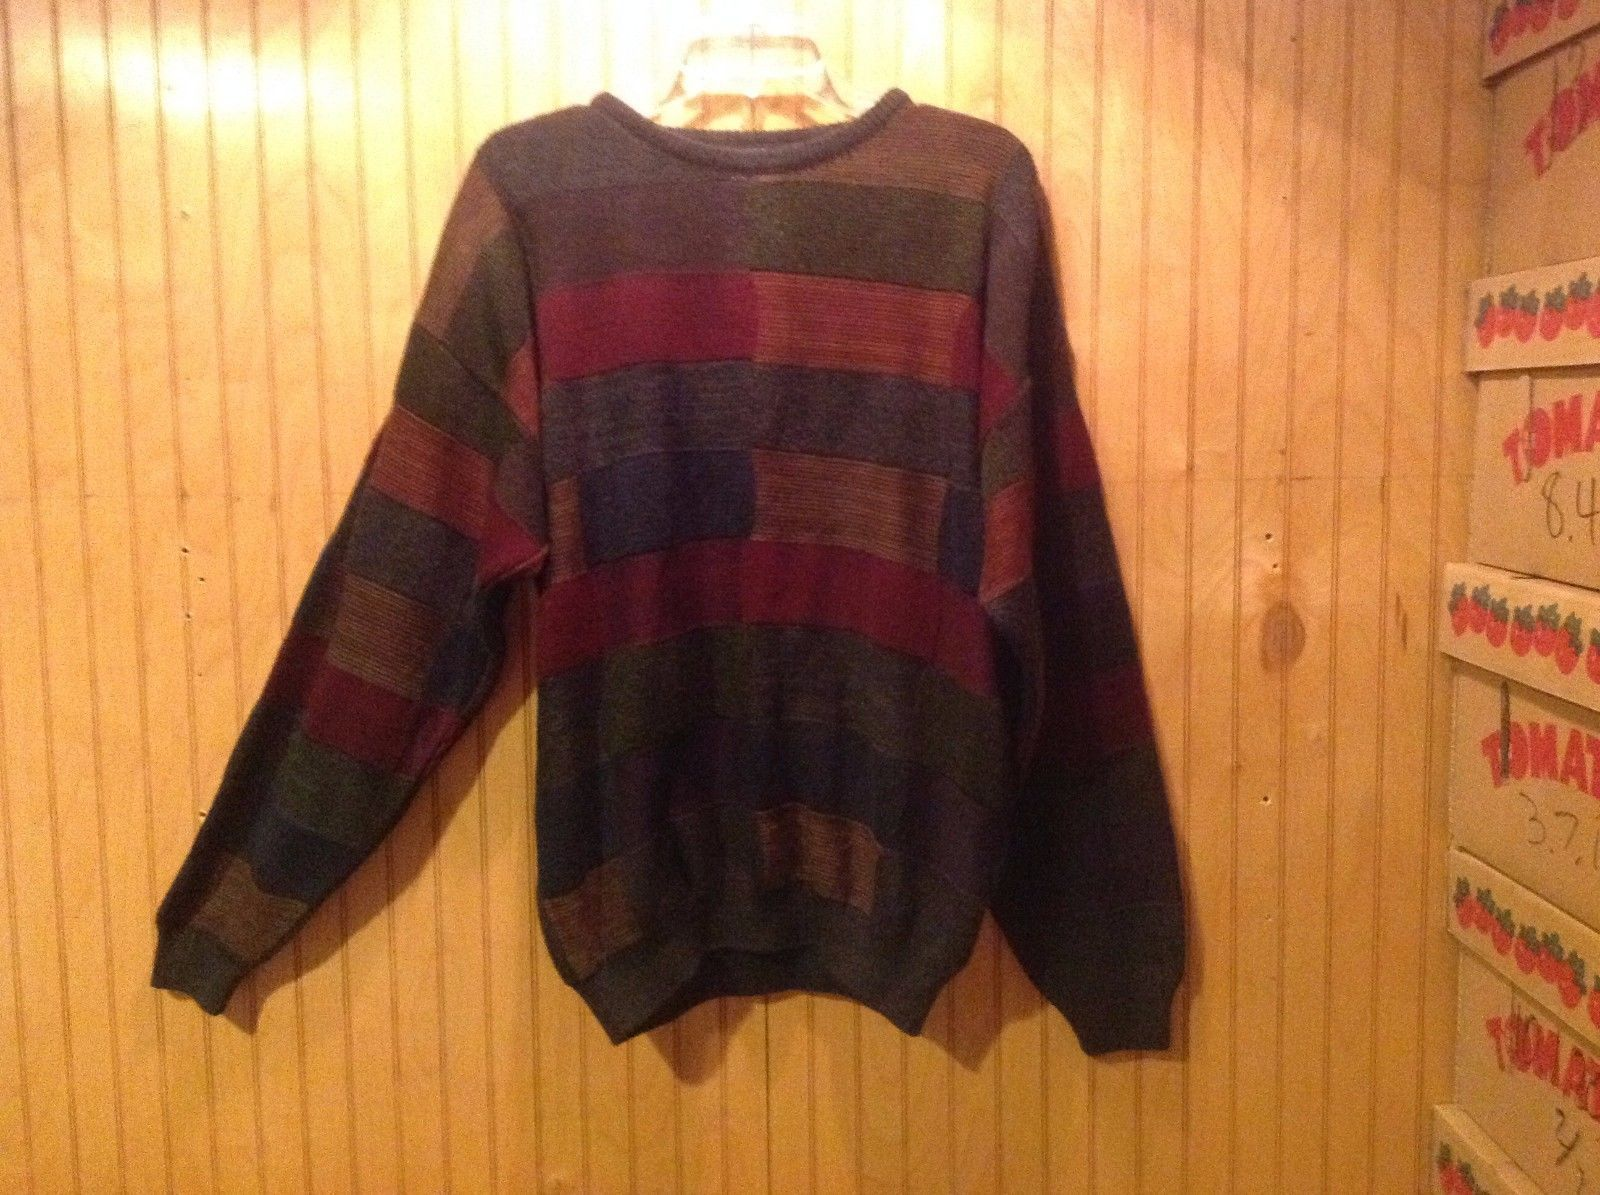 Gianfranco Ruffini Italy Dark Sweater Size Medium Checkered Pattern Multicolor